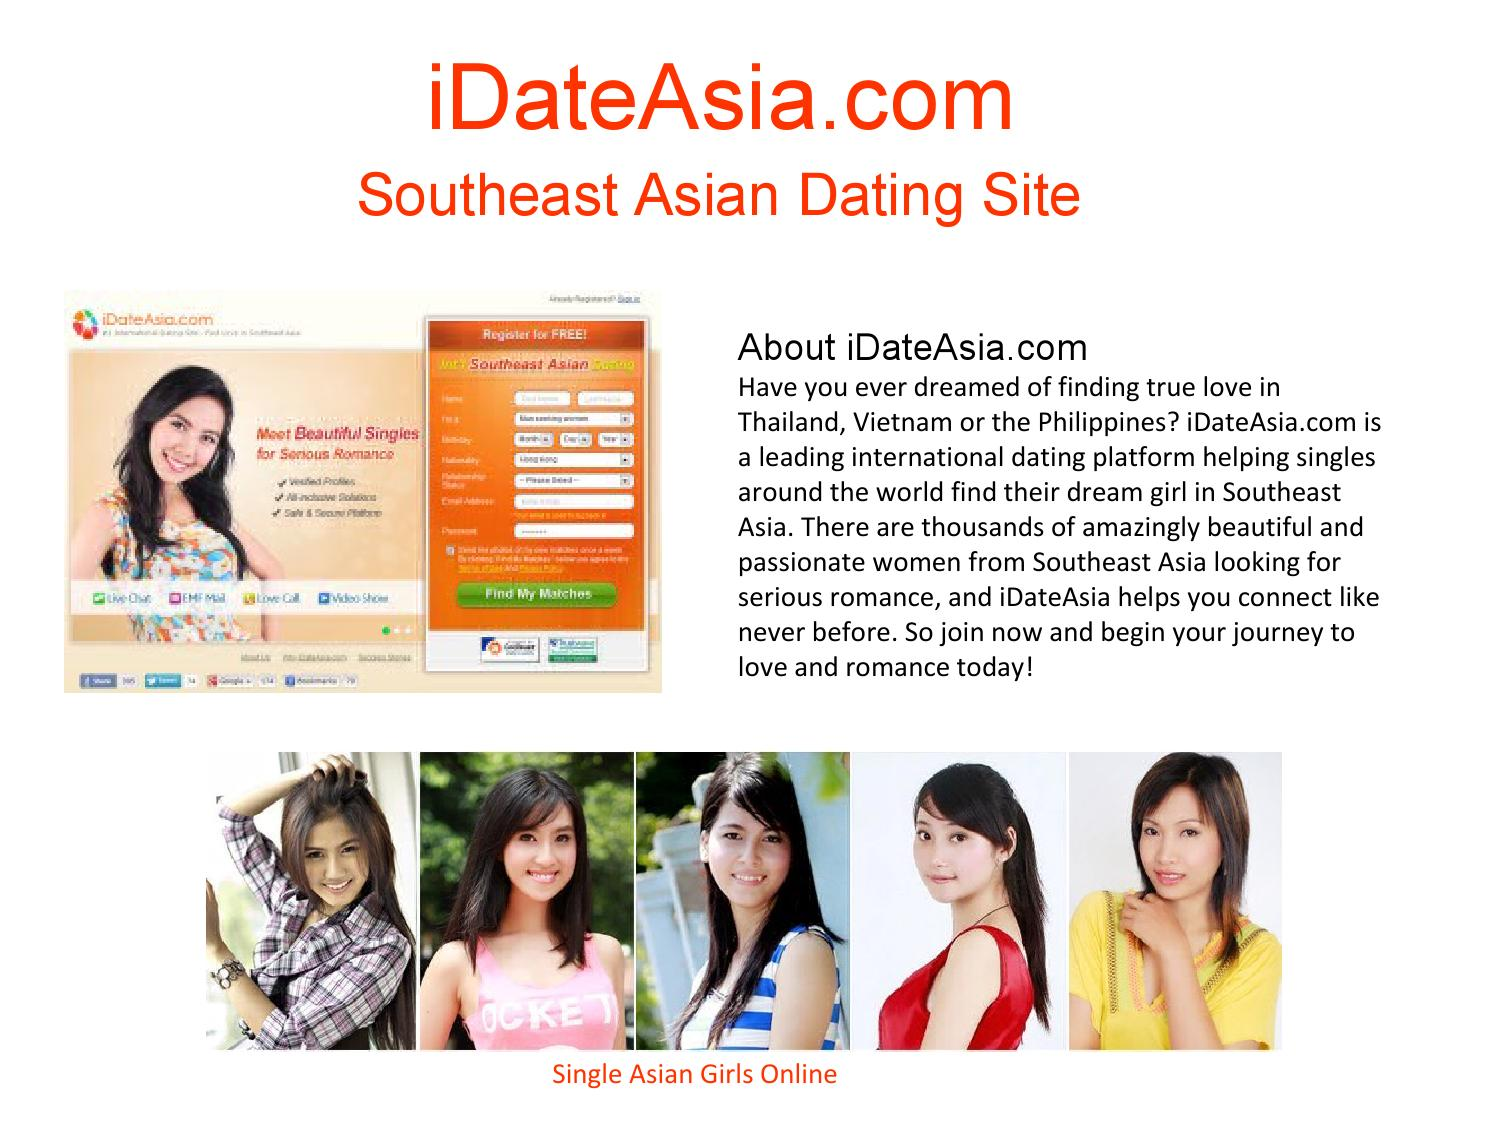 farlington asian dating website The significant ethnic minorities were asian at 26 per cent and mixed race at 14 per cent  facts and figures website ^ hampshire county council: public health in hampshire.